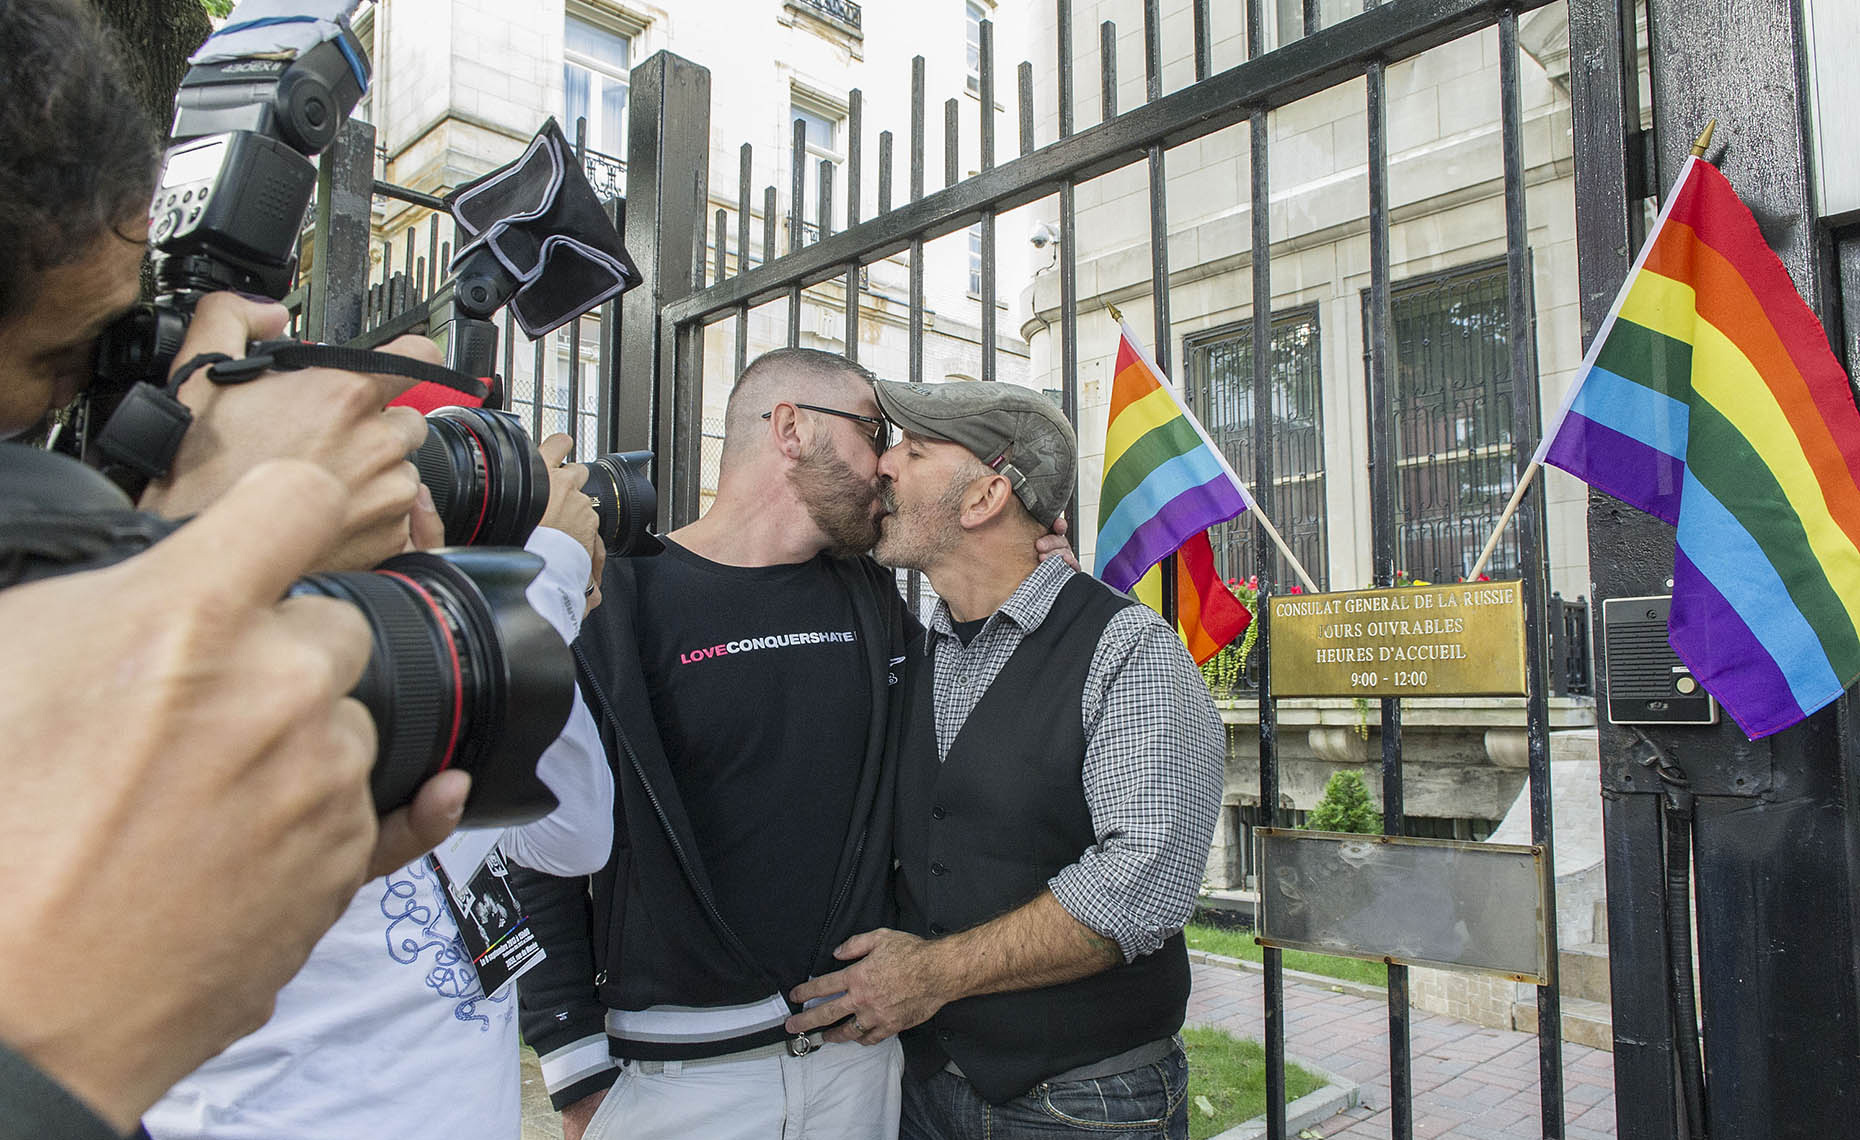 NEW_PhotoReporters_gay-kiss-in-at-Russian-Consulate-in-Olympics-protest_Montreal_Canada